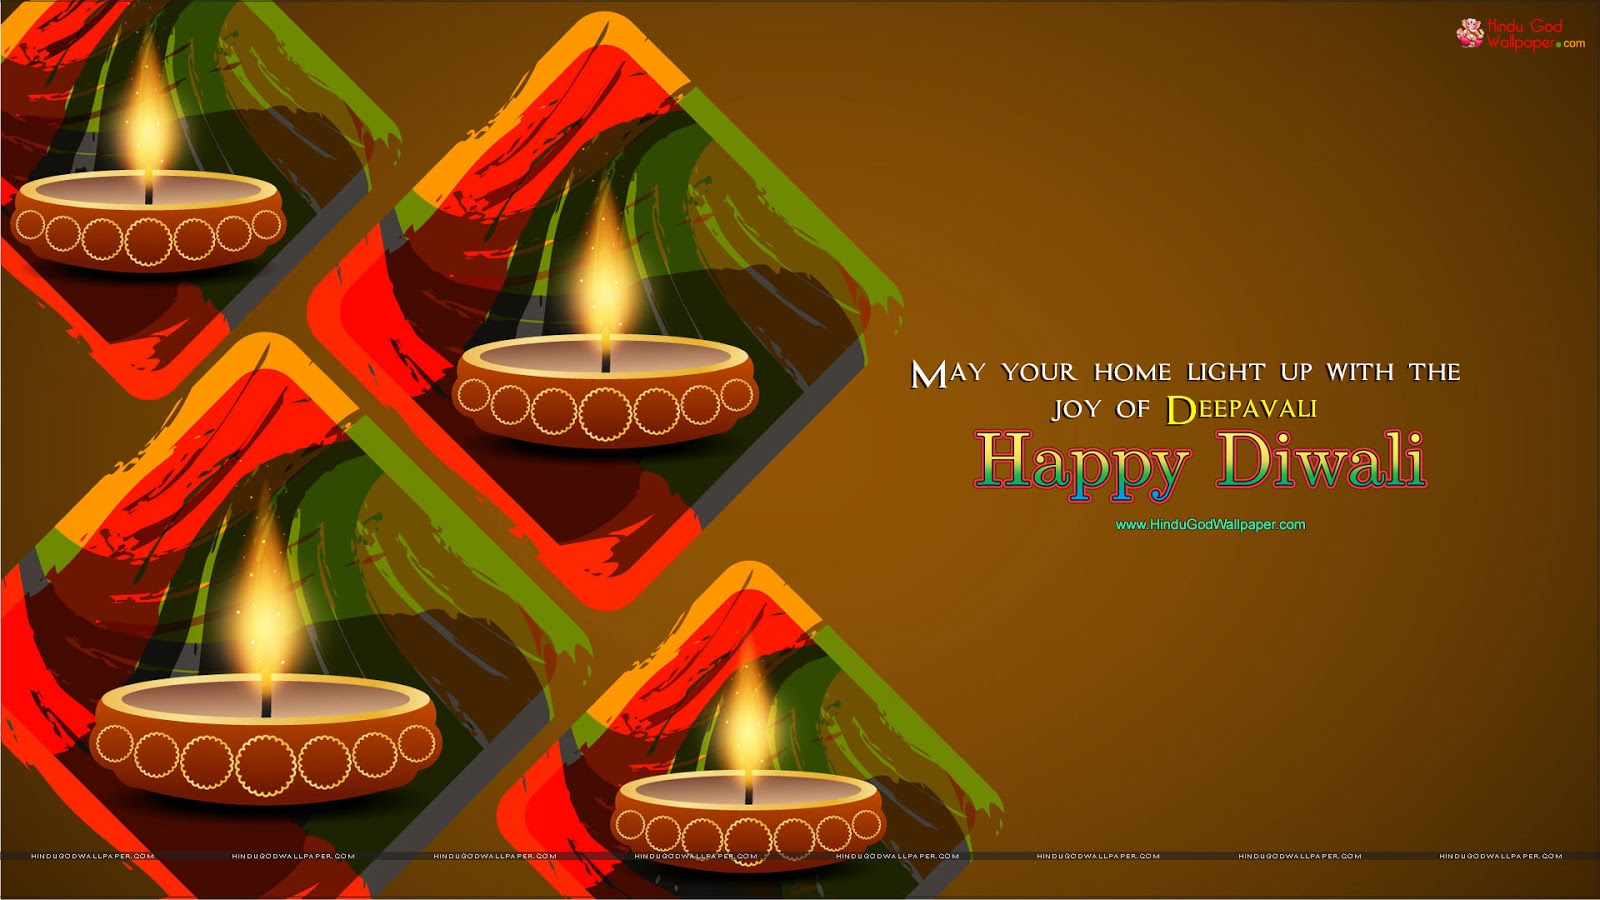 Happy diwali wallpaper 2017 diwalli whatsapp status videos diwali hd wallpaper with quotes m4hsunfo